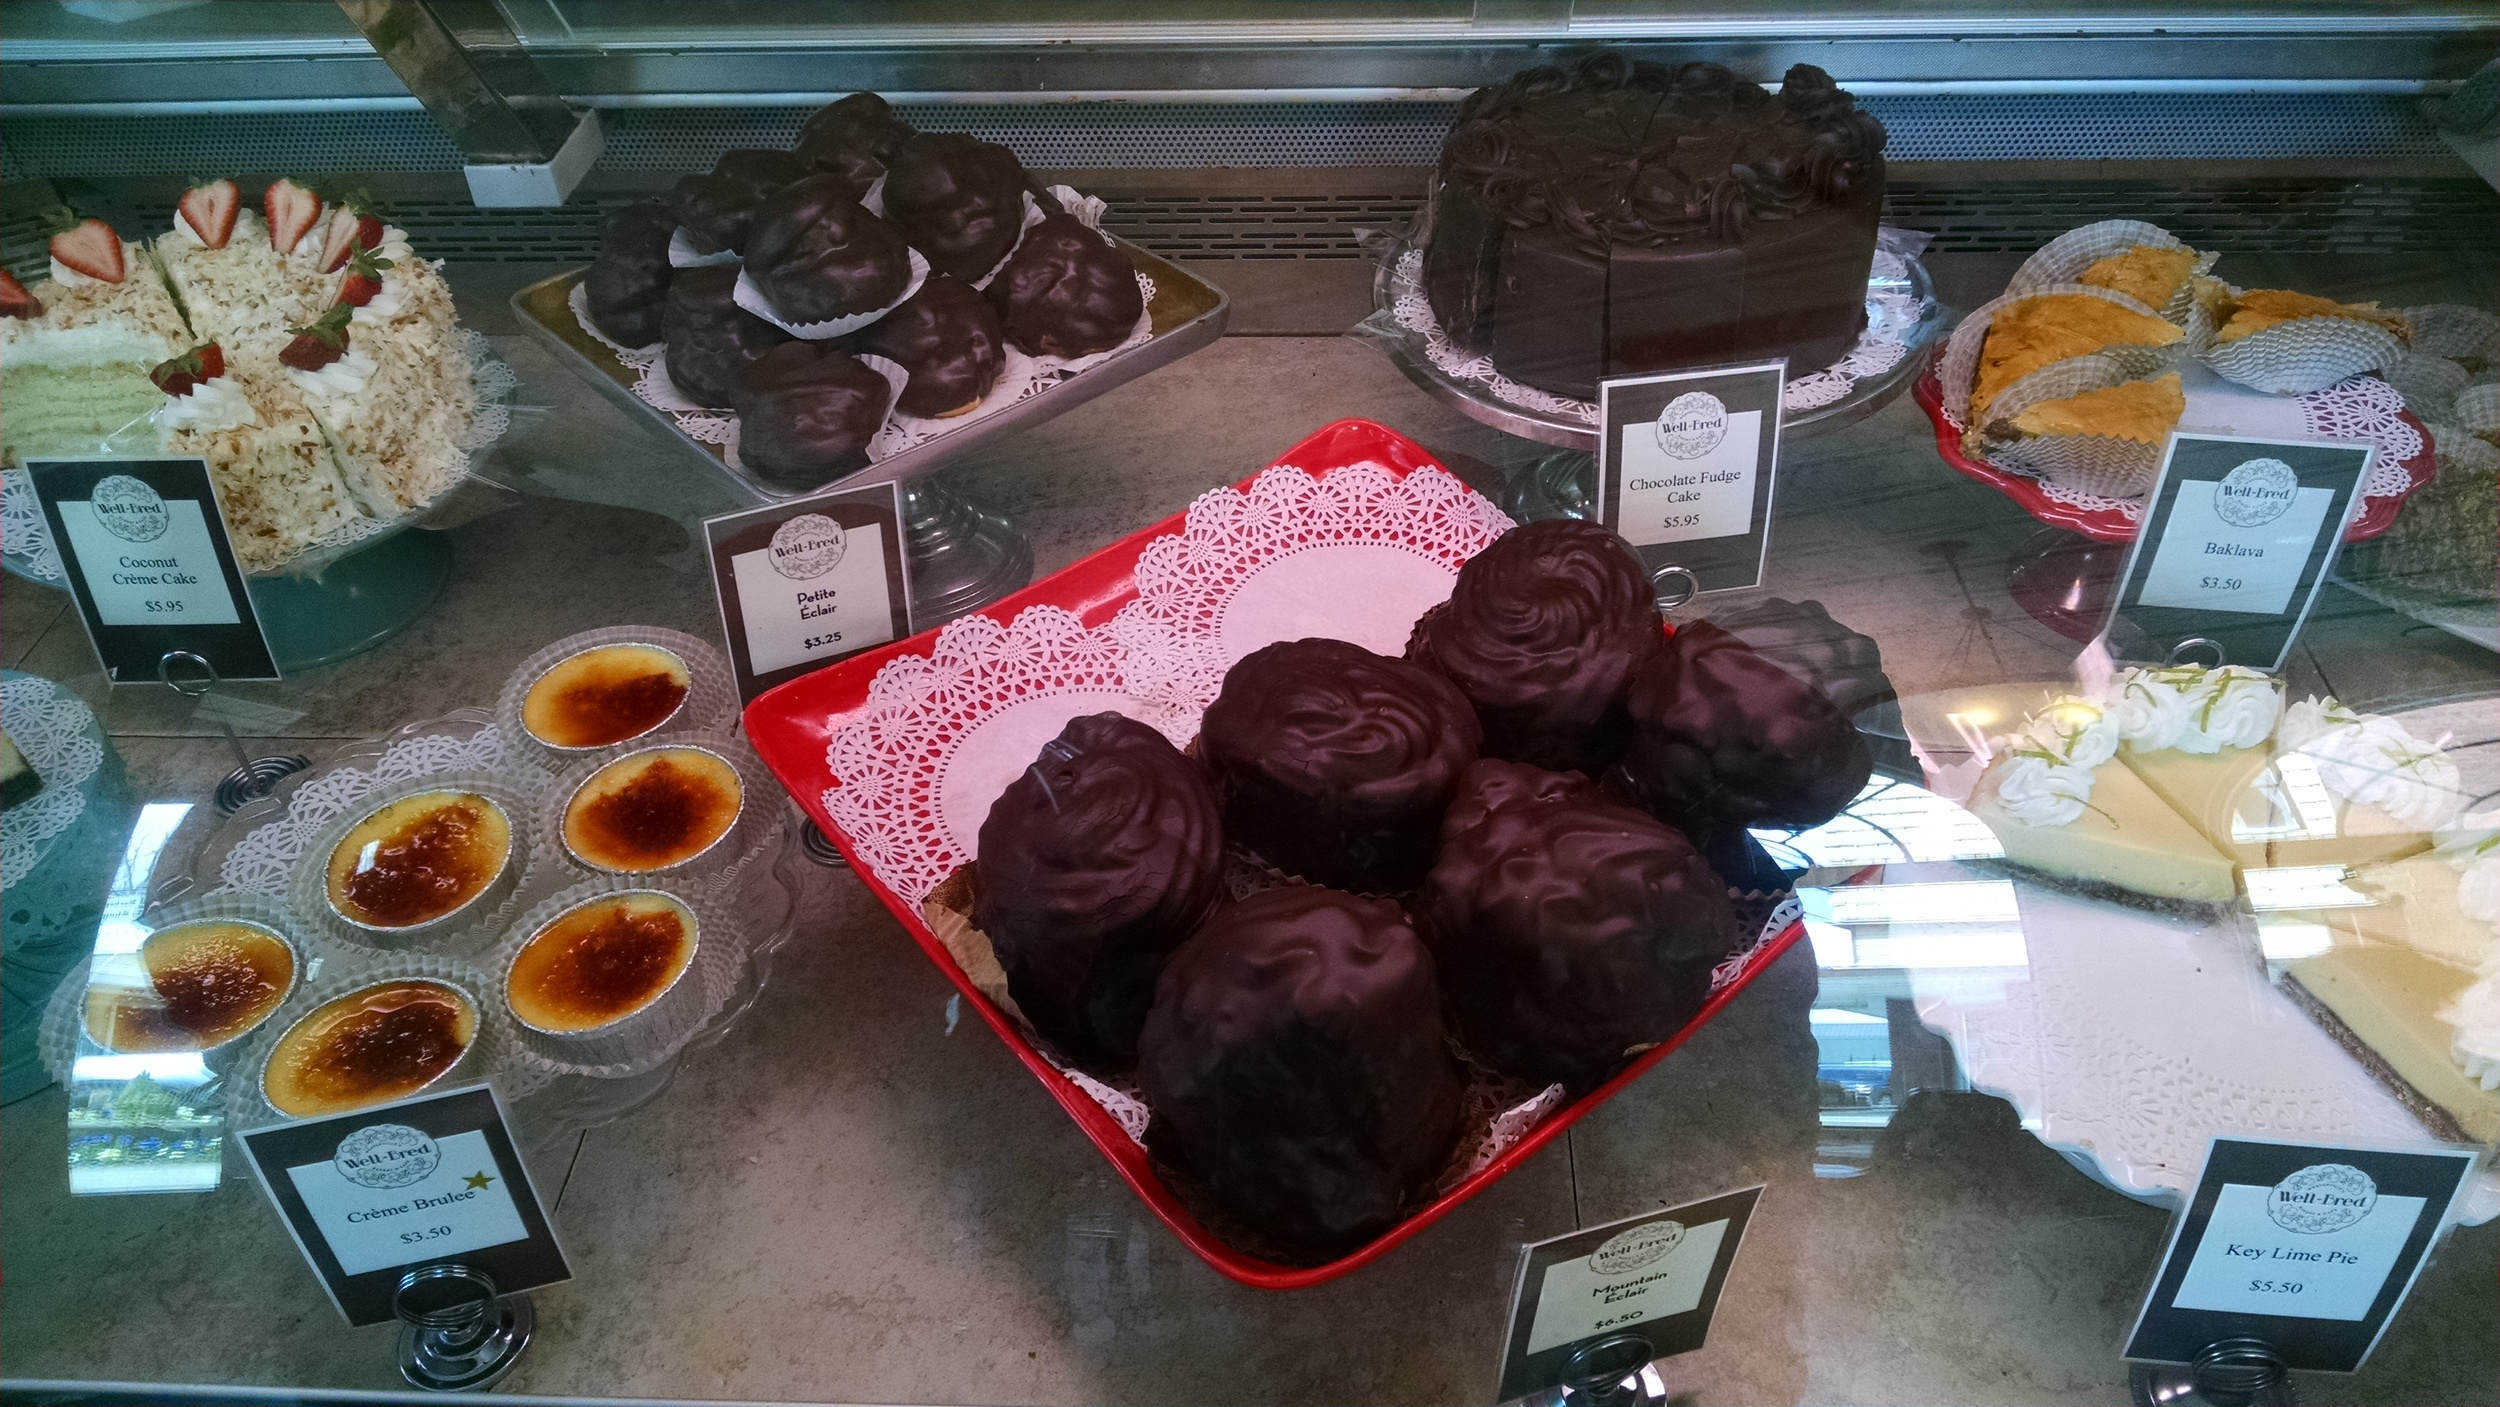 Goodies - an understatements! - at the Well Bred bakery in Weaverville